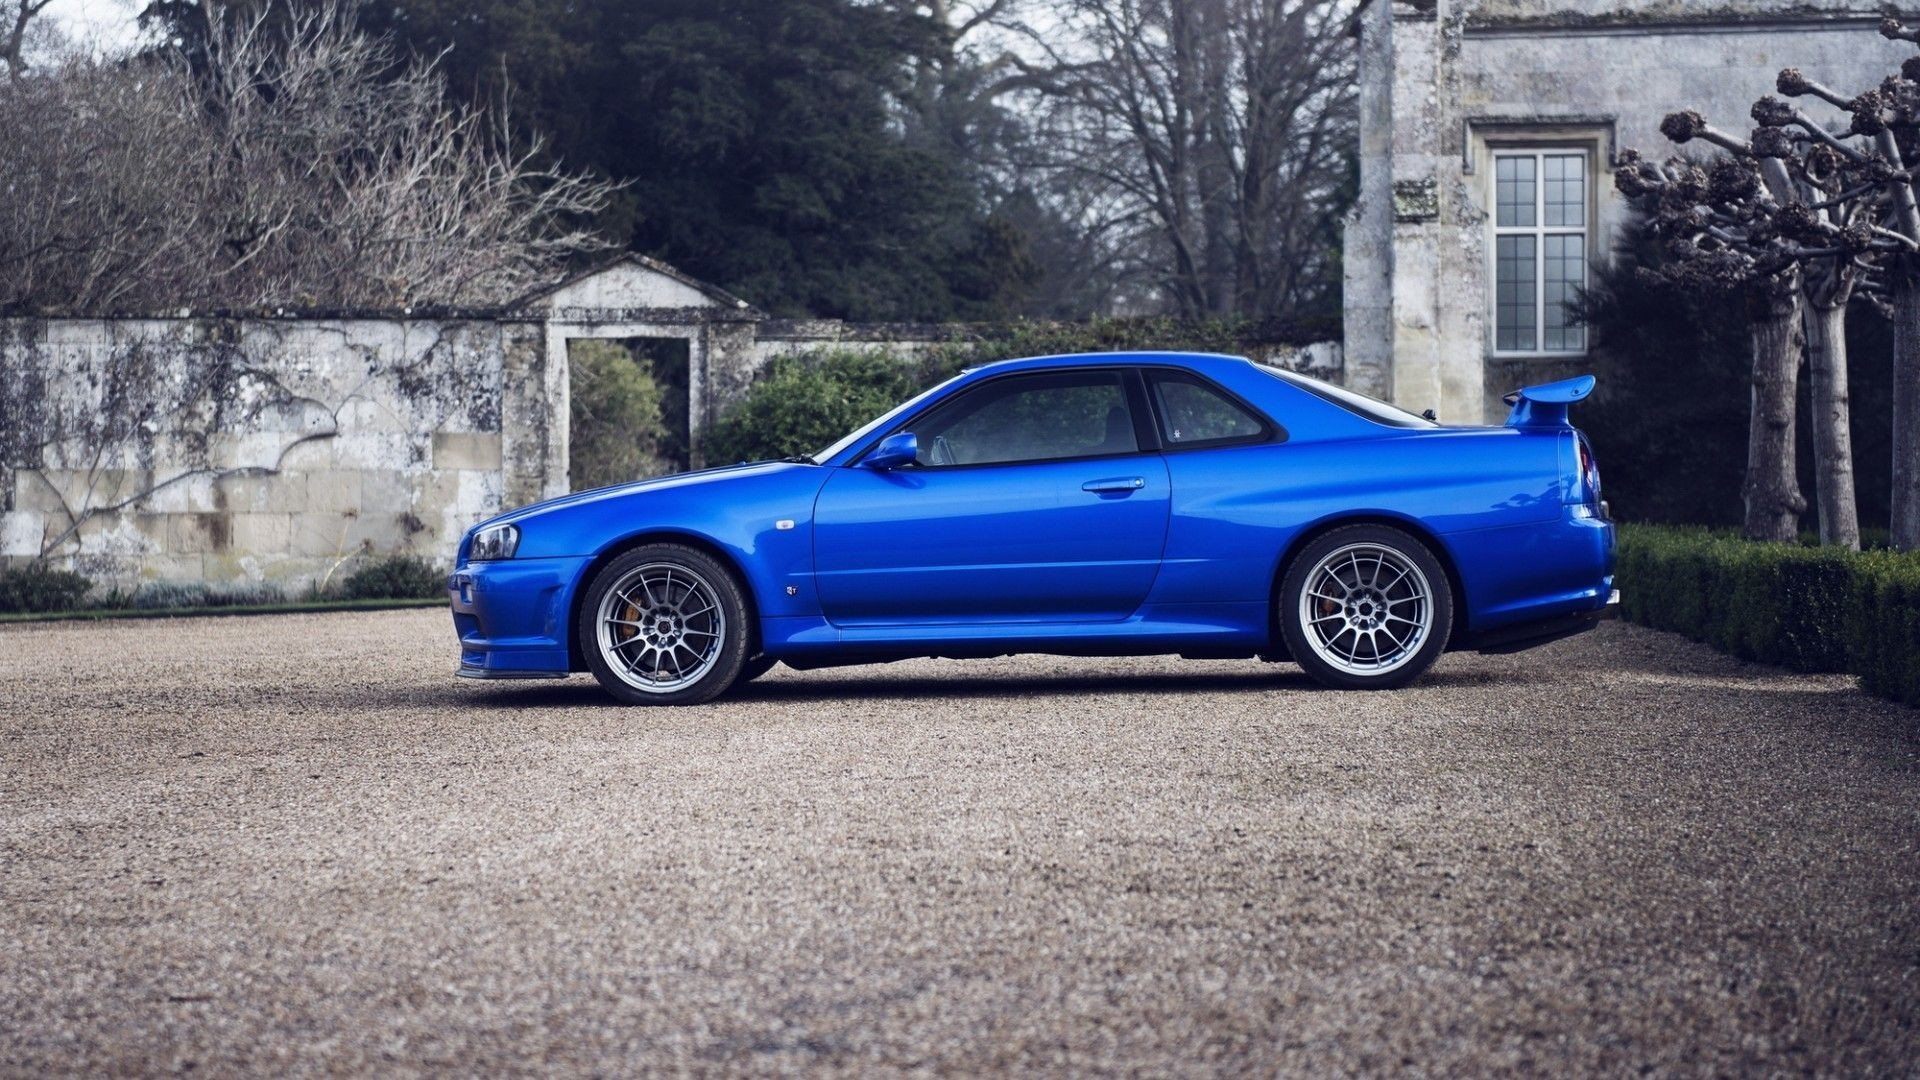 1920x1080 Cars parking rims blue cars Nissan Skyline GT-R r34 wallpaper .